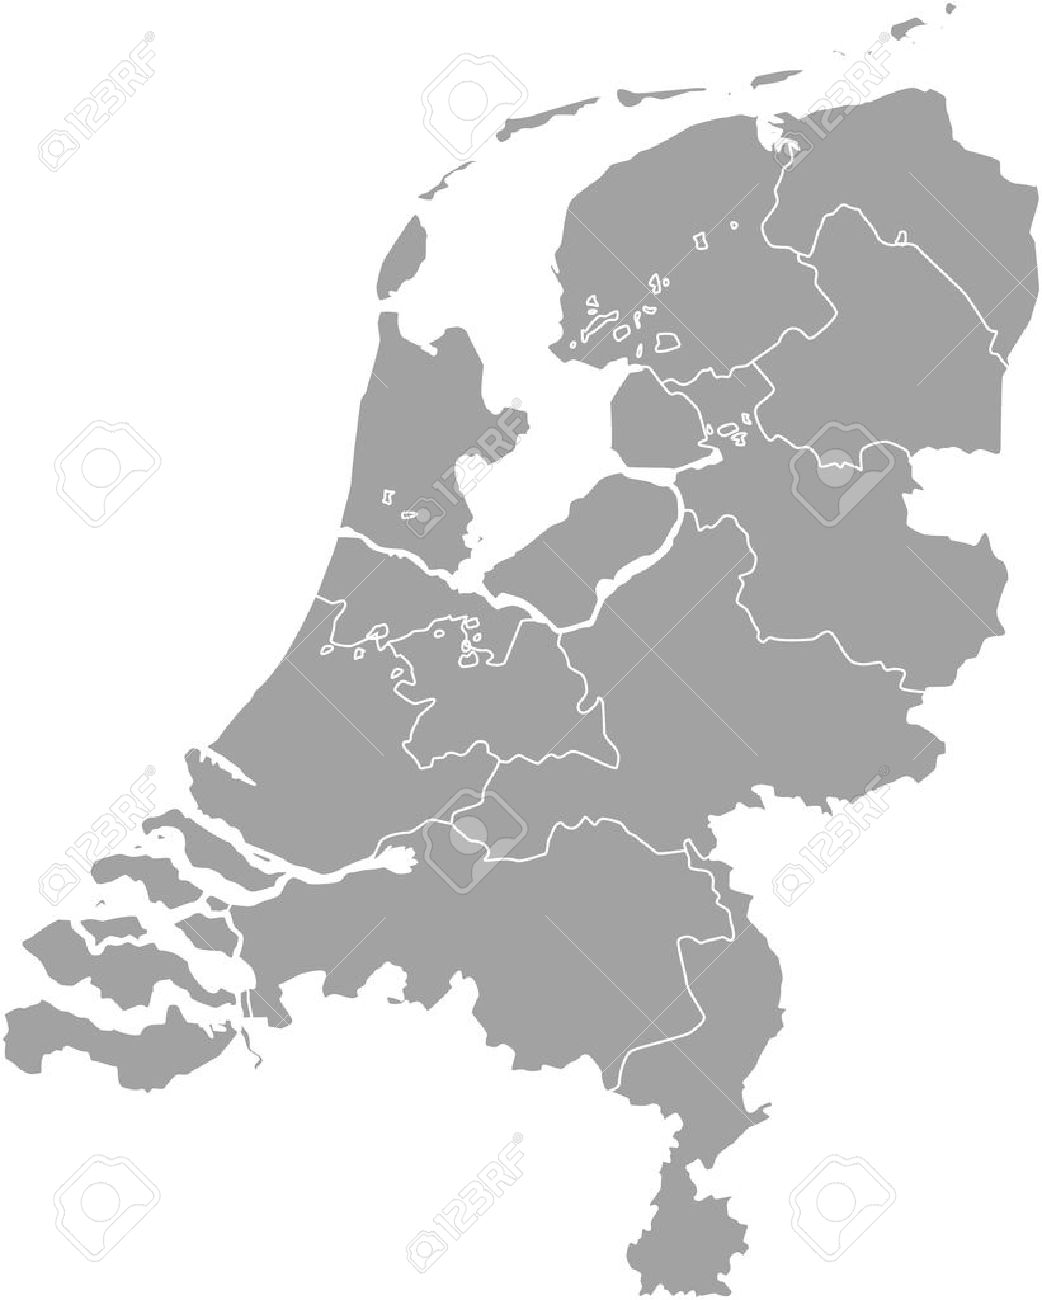 Netherlands map outline vector with borders of provinces or states - 51018511